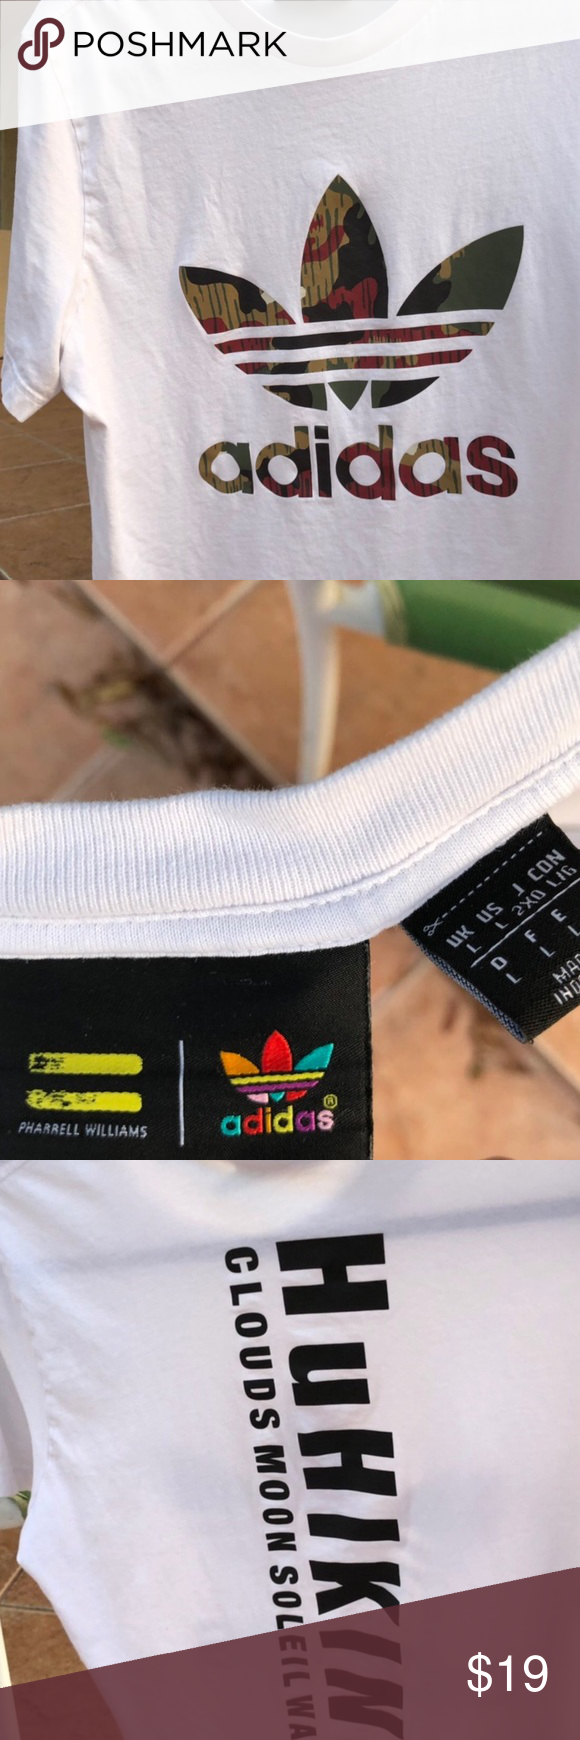 d59bd63dbcbf6 ADIDAS WHITE TSHIRT PHARRELL WILLIAMS HU AUTHENTIC Picture as described. No  cracking in print